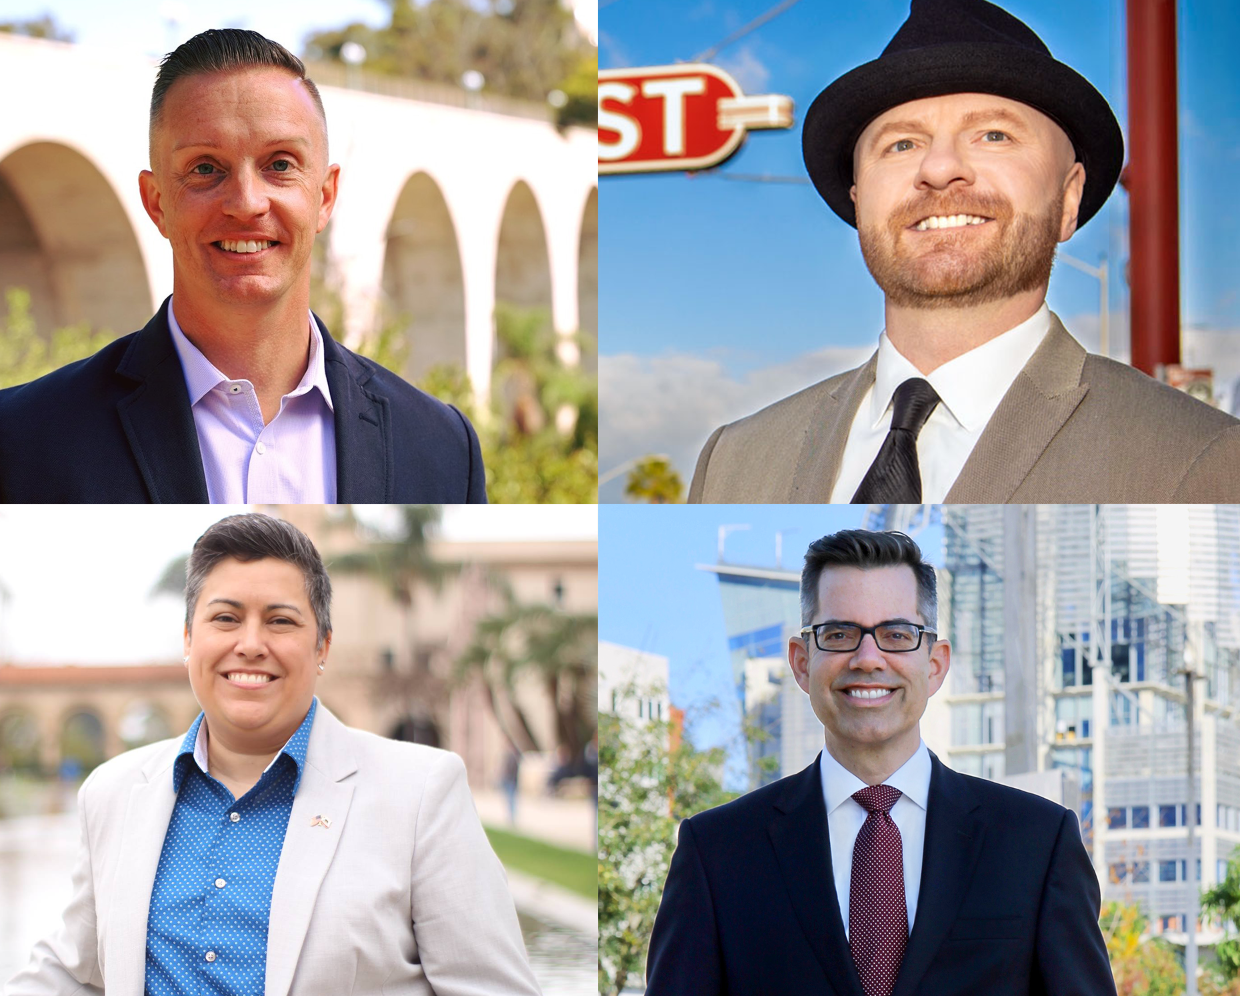 City Council District 3 Candidates Differ In Approaches To Homelessness